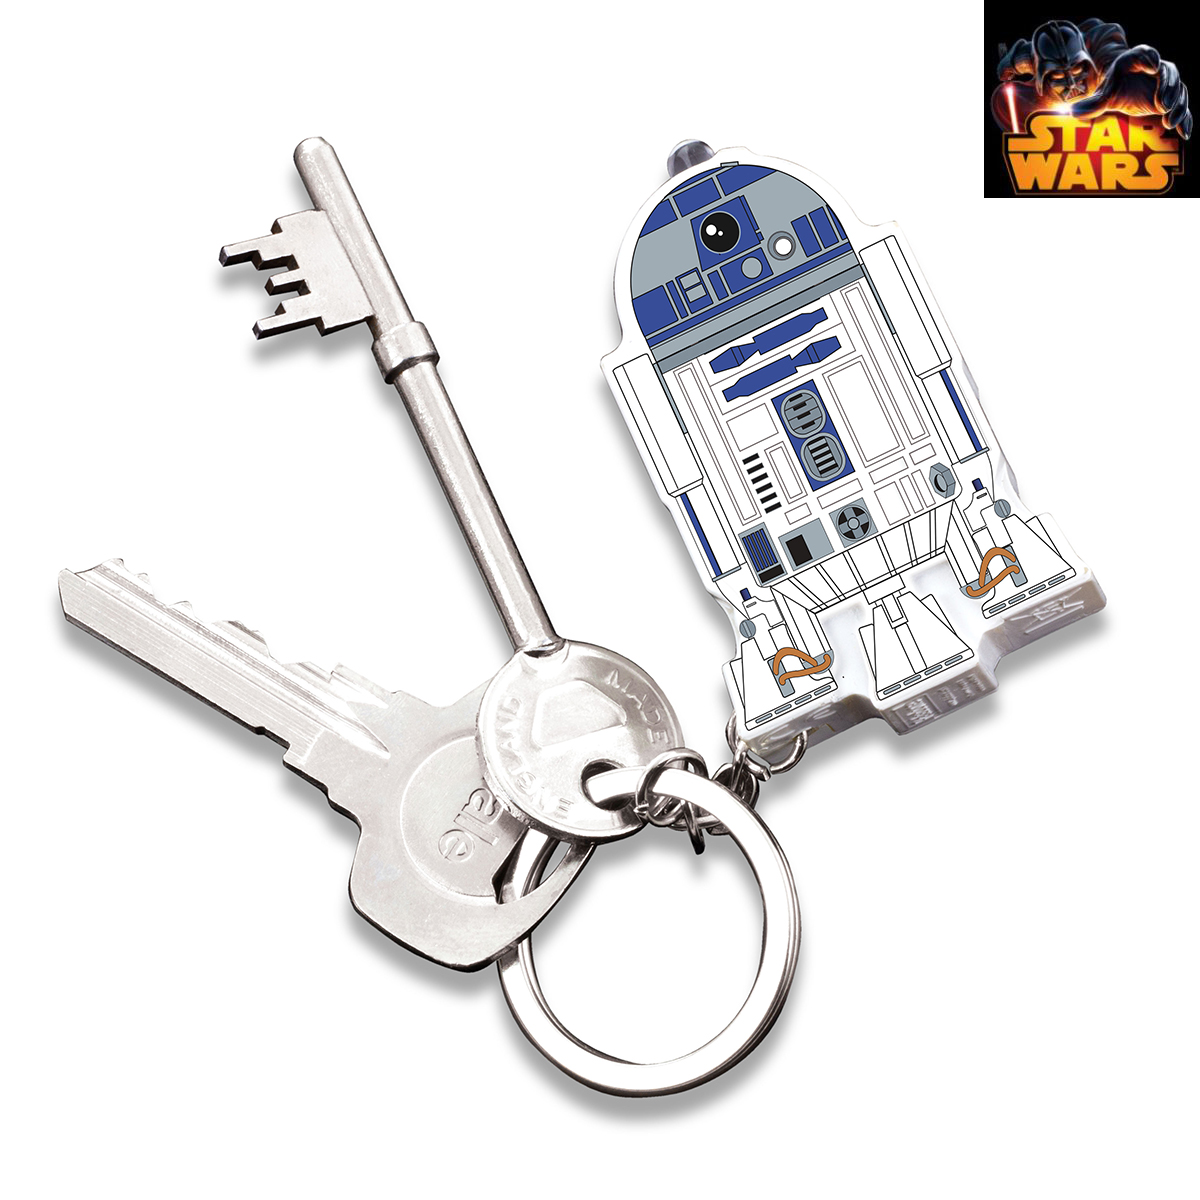 Porte cl s r2d2 star wars sonore et lumineux gadget for Decoration porte star wars